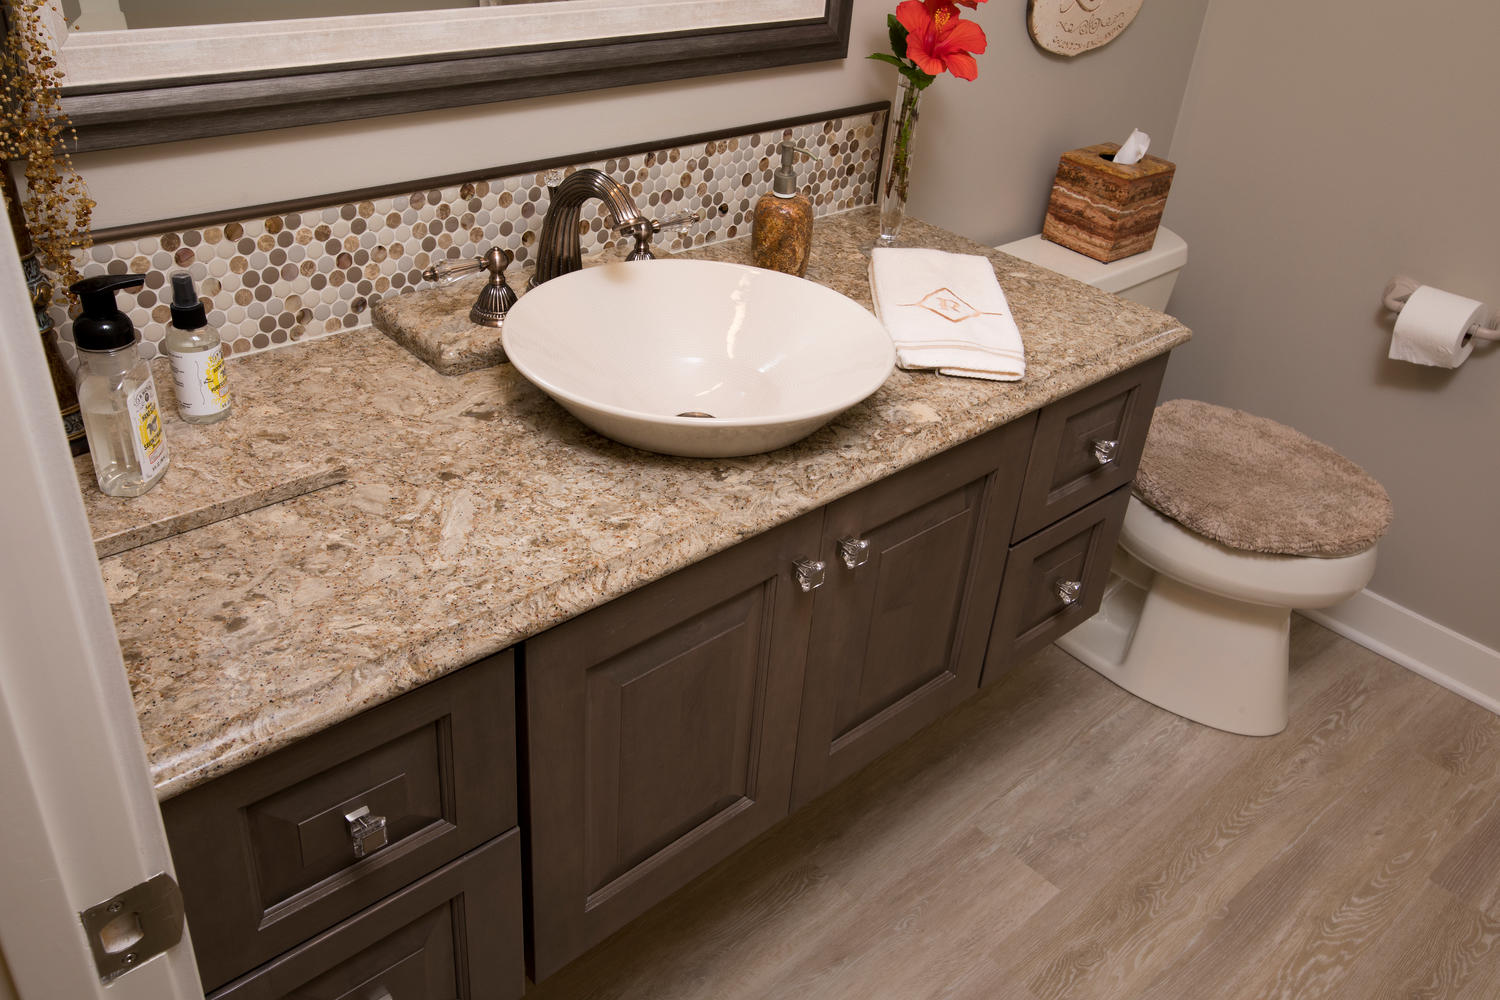 Vanities Available at The Cabinet Store | High Quality ...